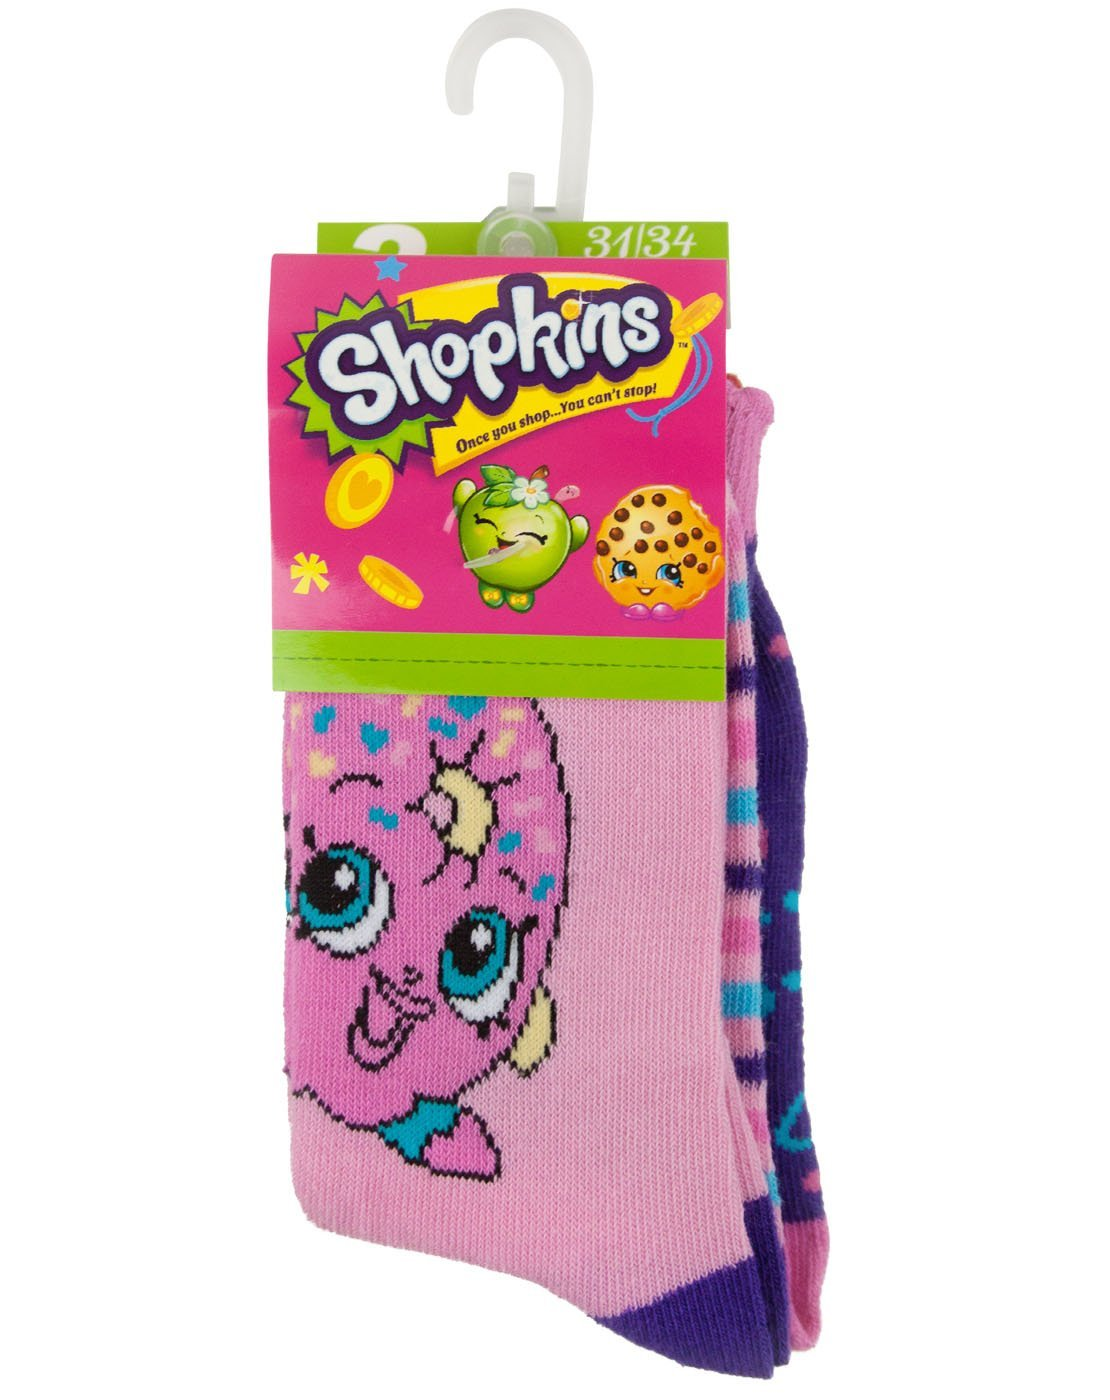 Shopkins Assorted Girl's Socks Set 1